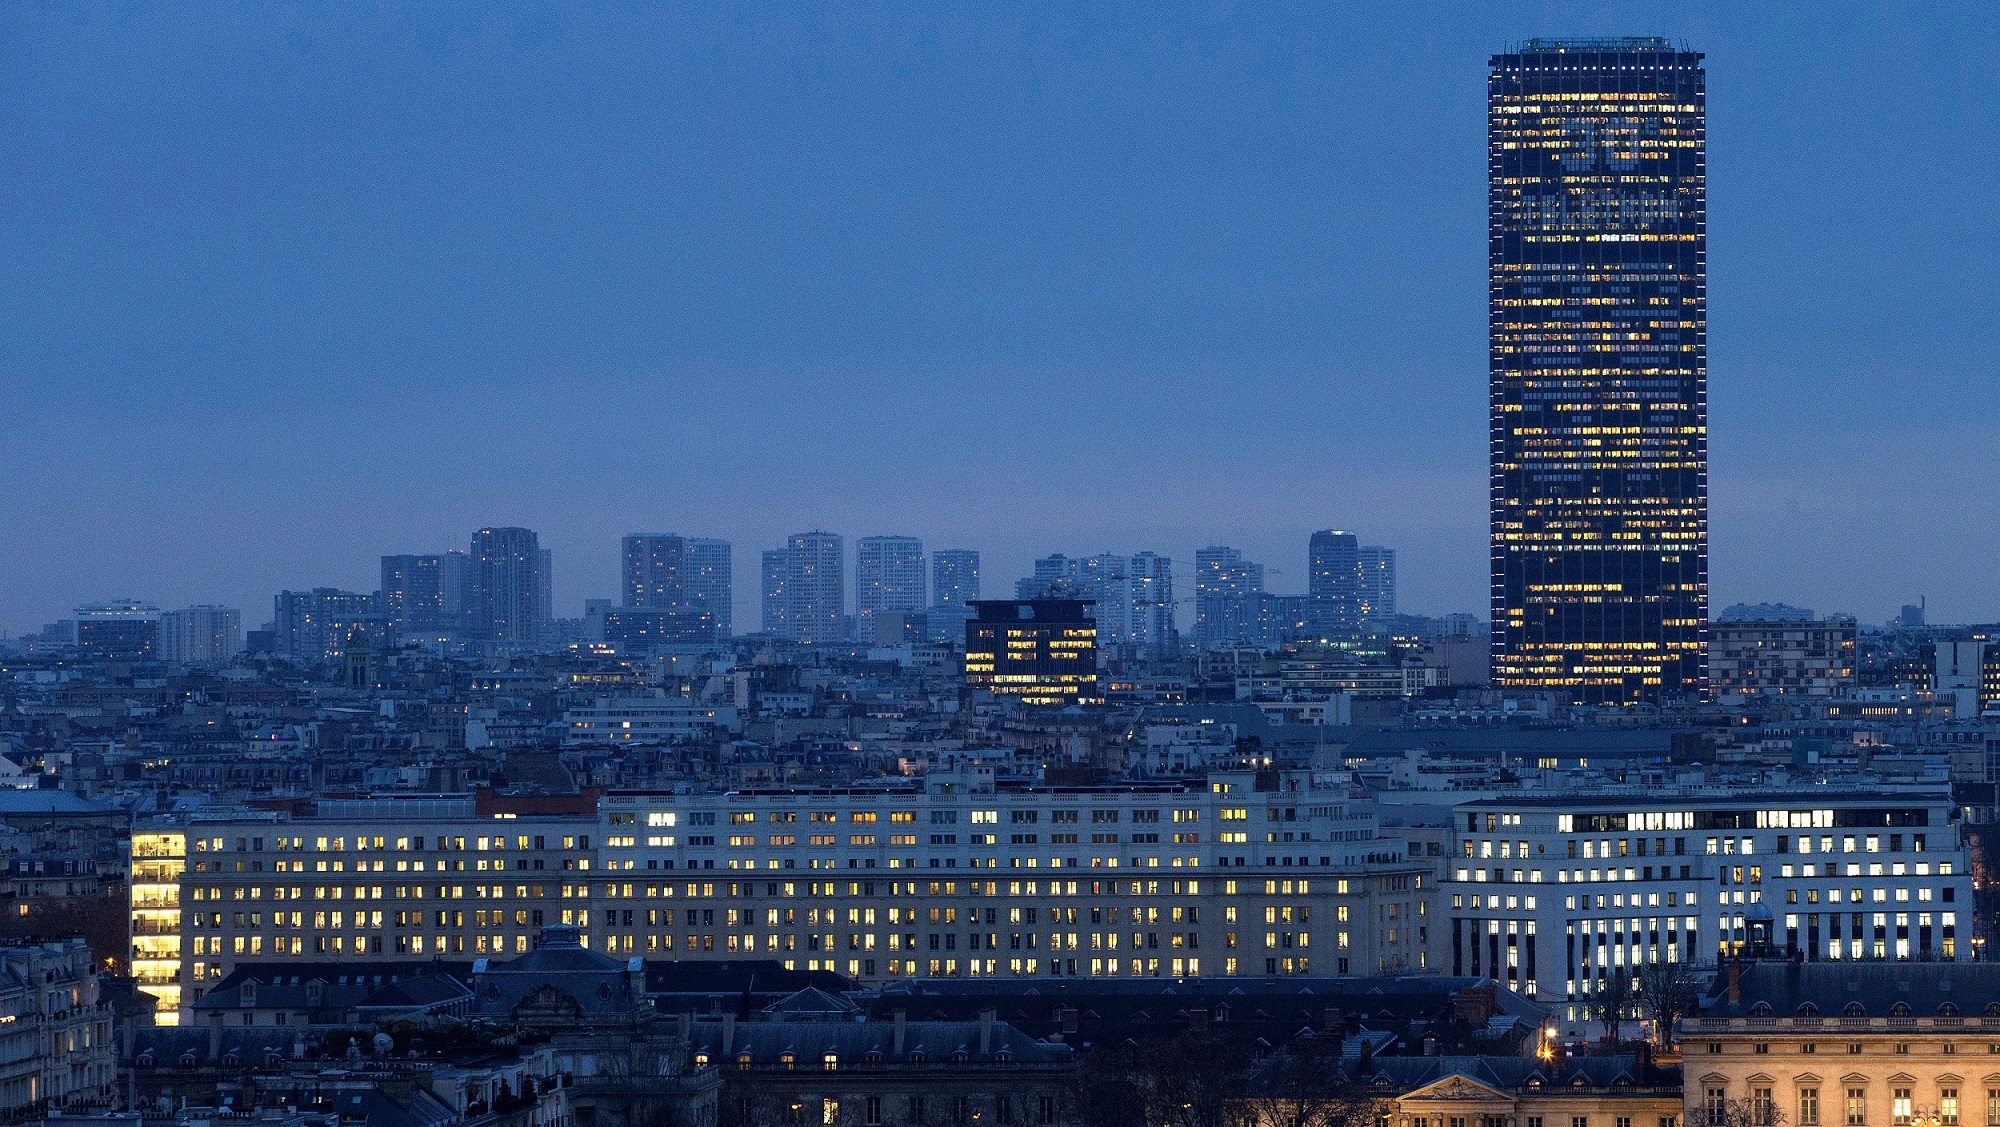 51/Quartier/Hotel-close-to-Montparnasse-tower-district_1.jpeg